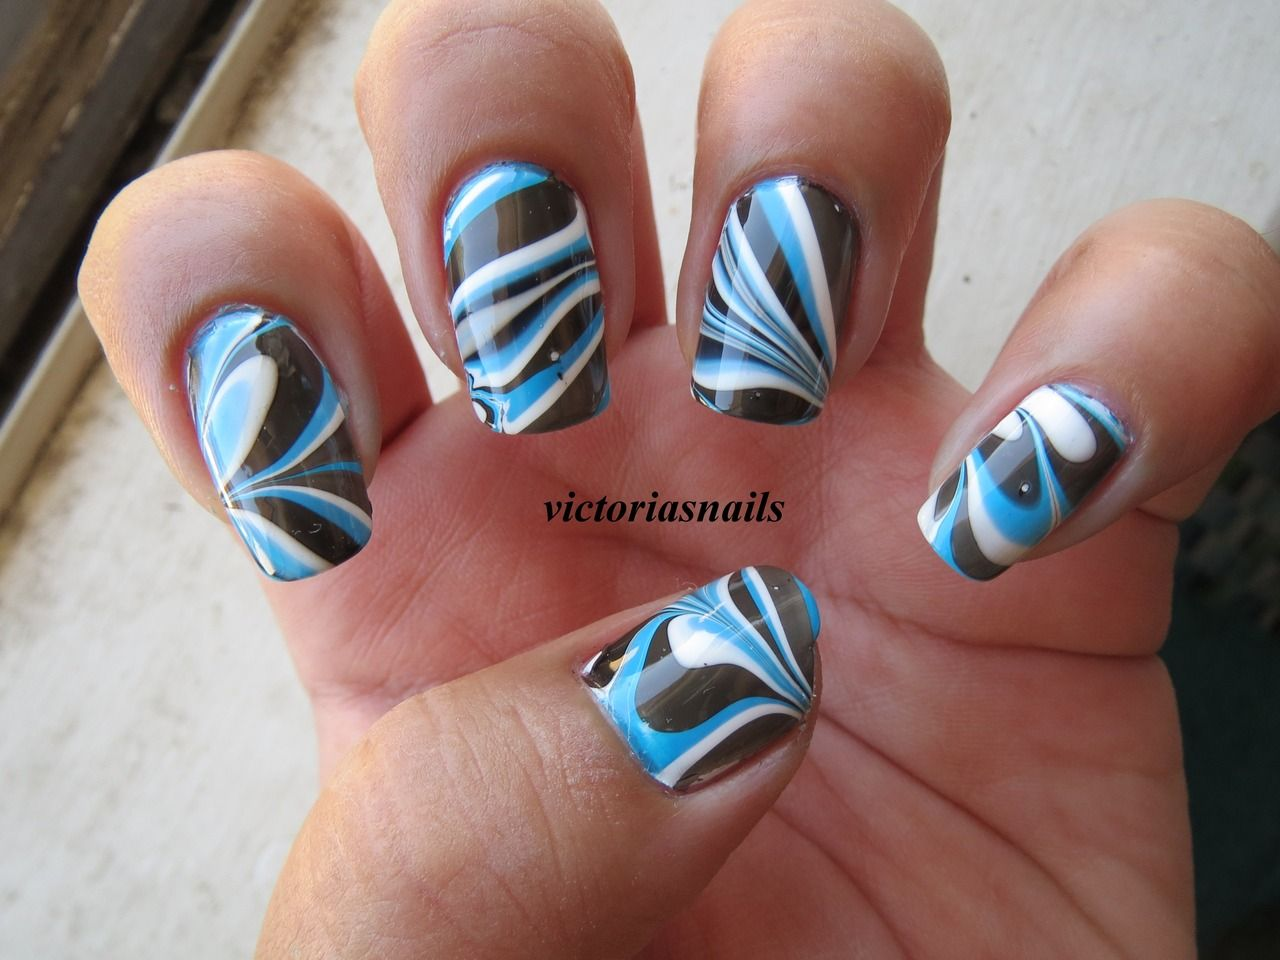 Blue, Black & White Water Marbled Nails by Victoria's Nails - Blue, Black & White Water Marbled Nails By Victoria's Nails Nails